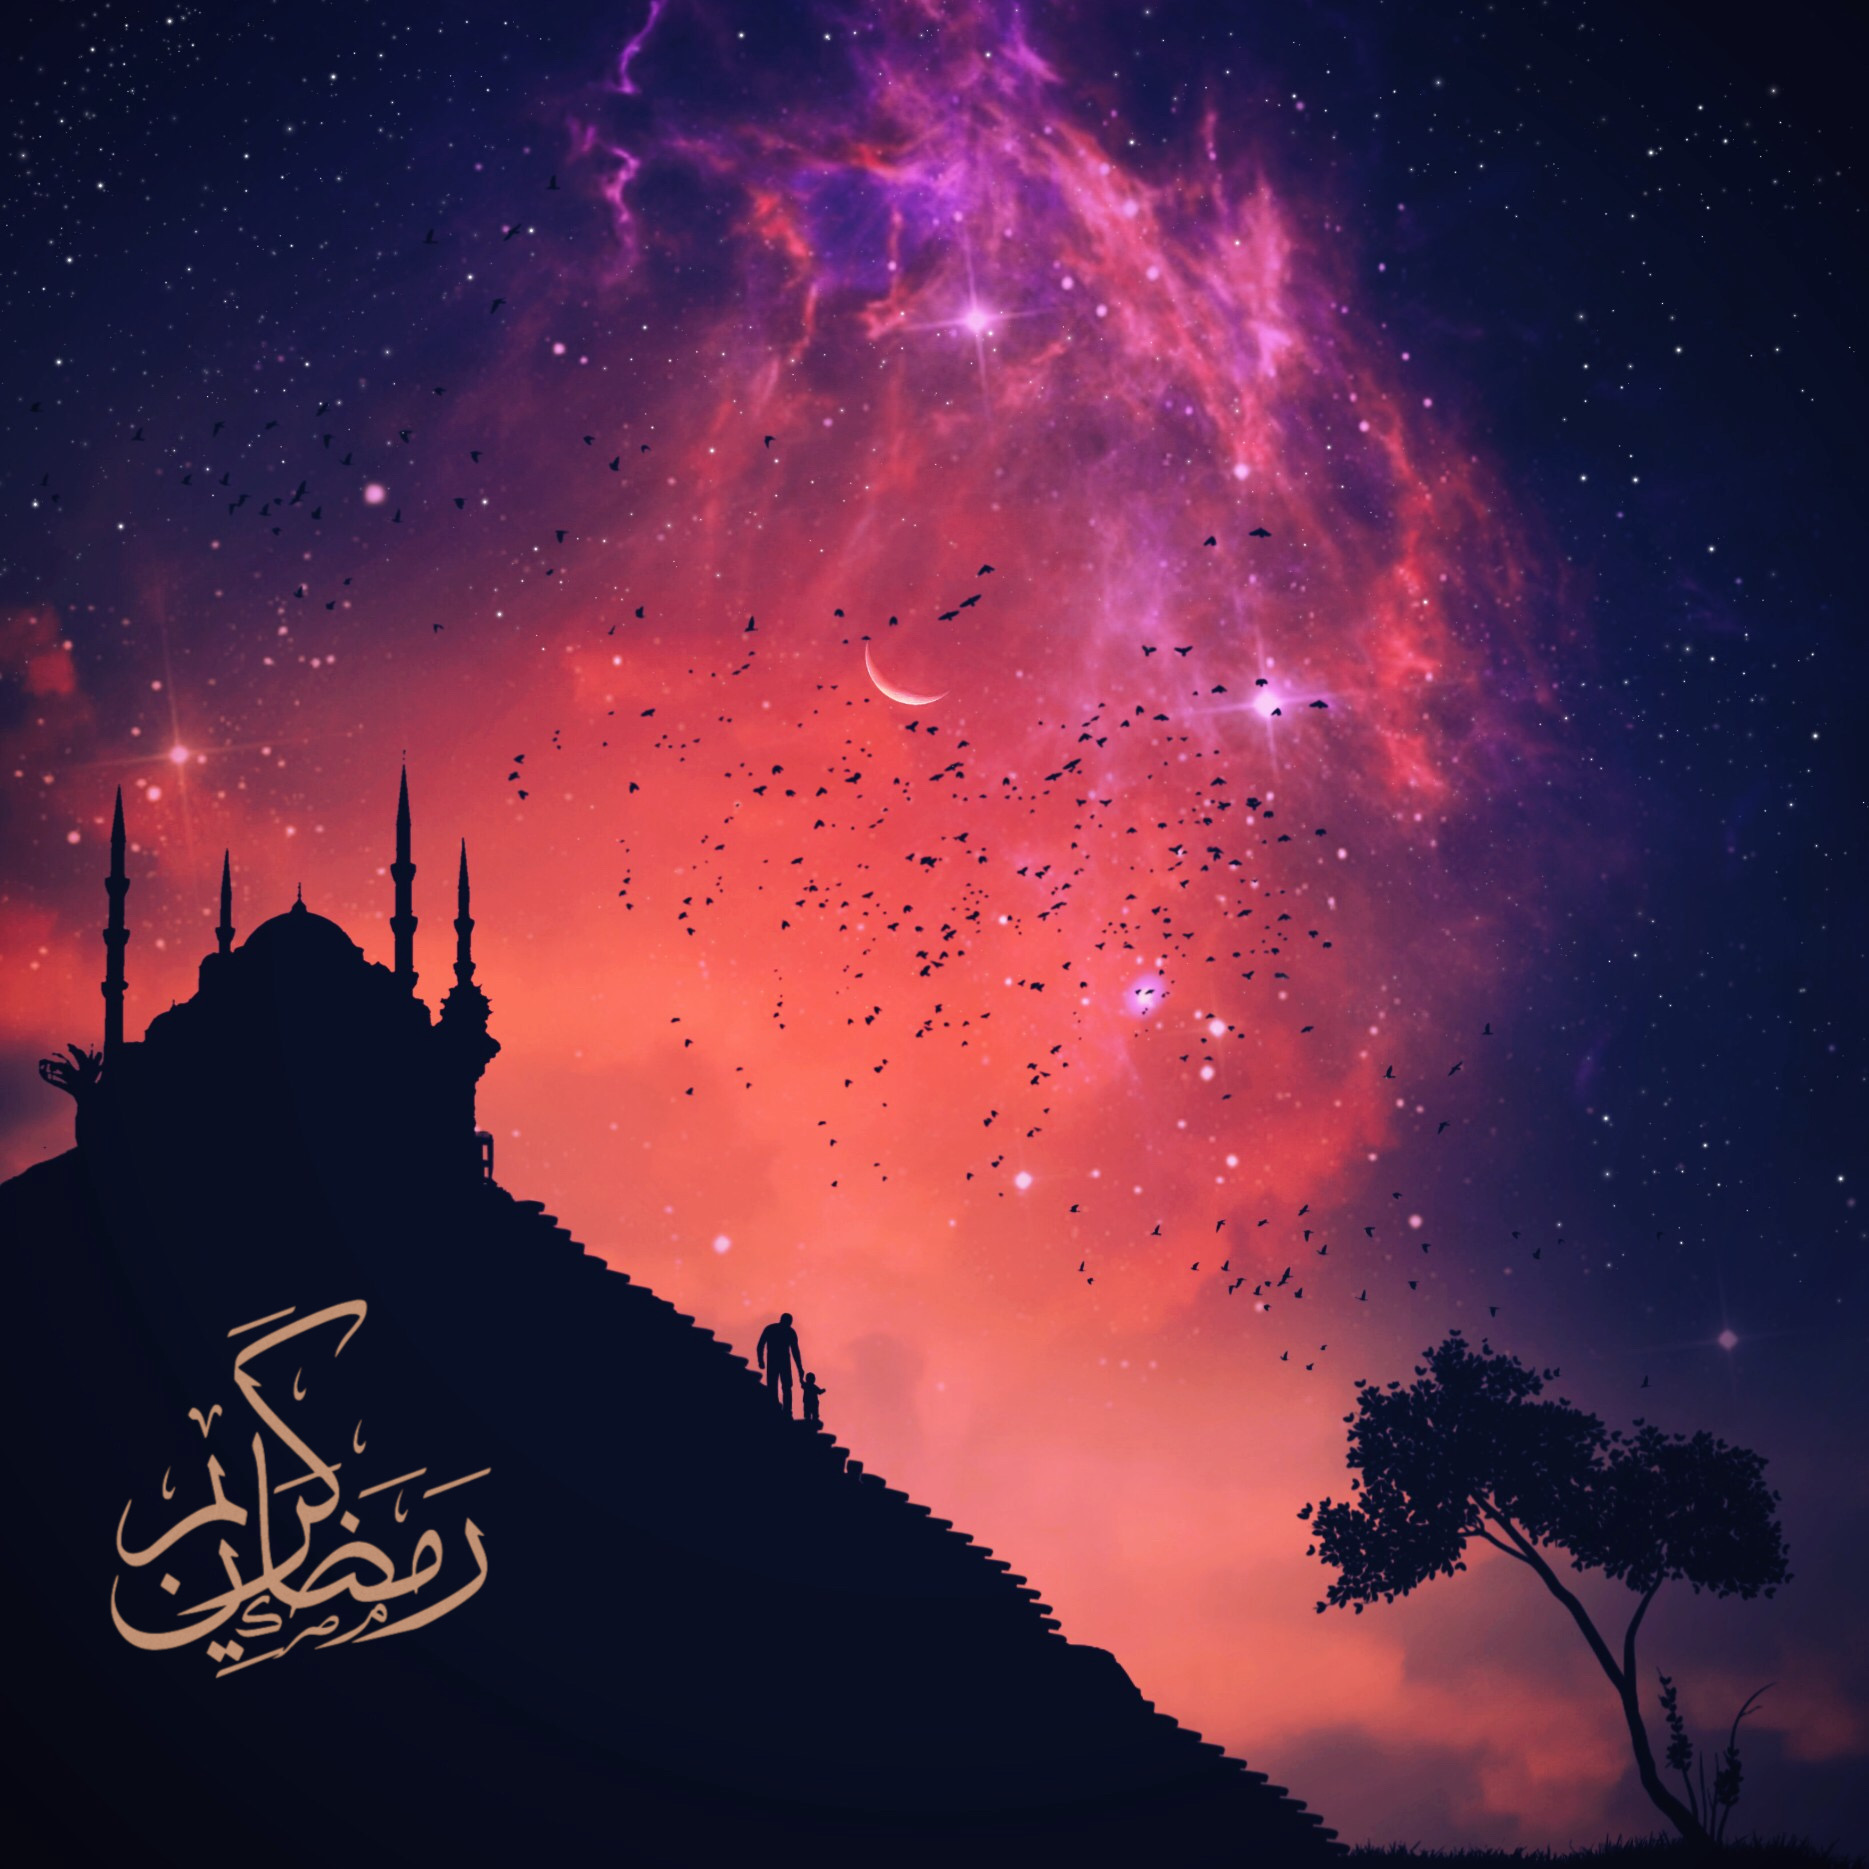 Can u pls like this photo#ramadan mubarak #freetoedit